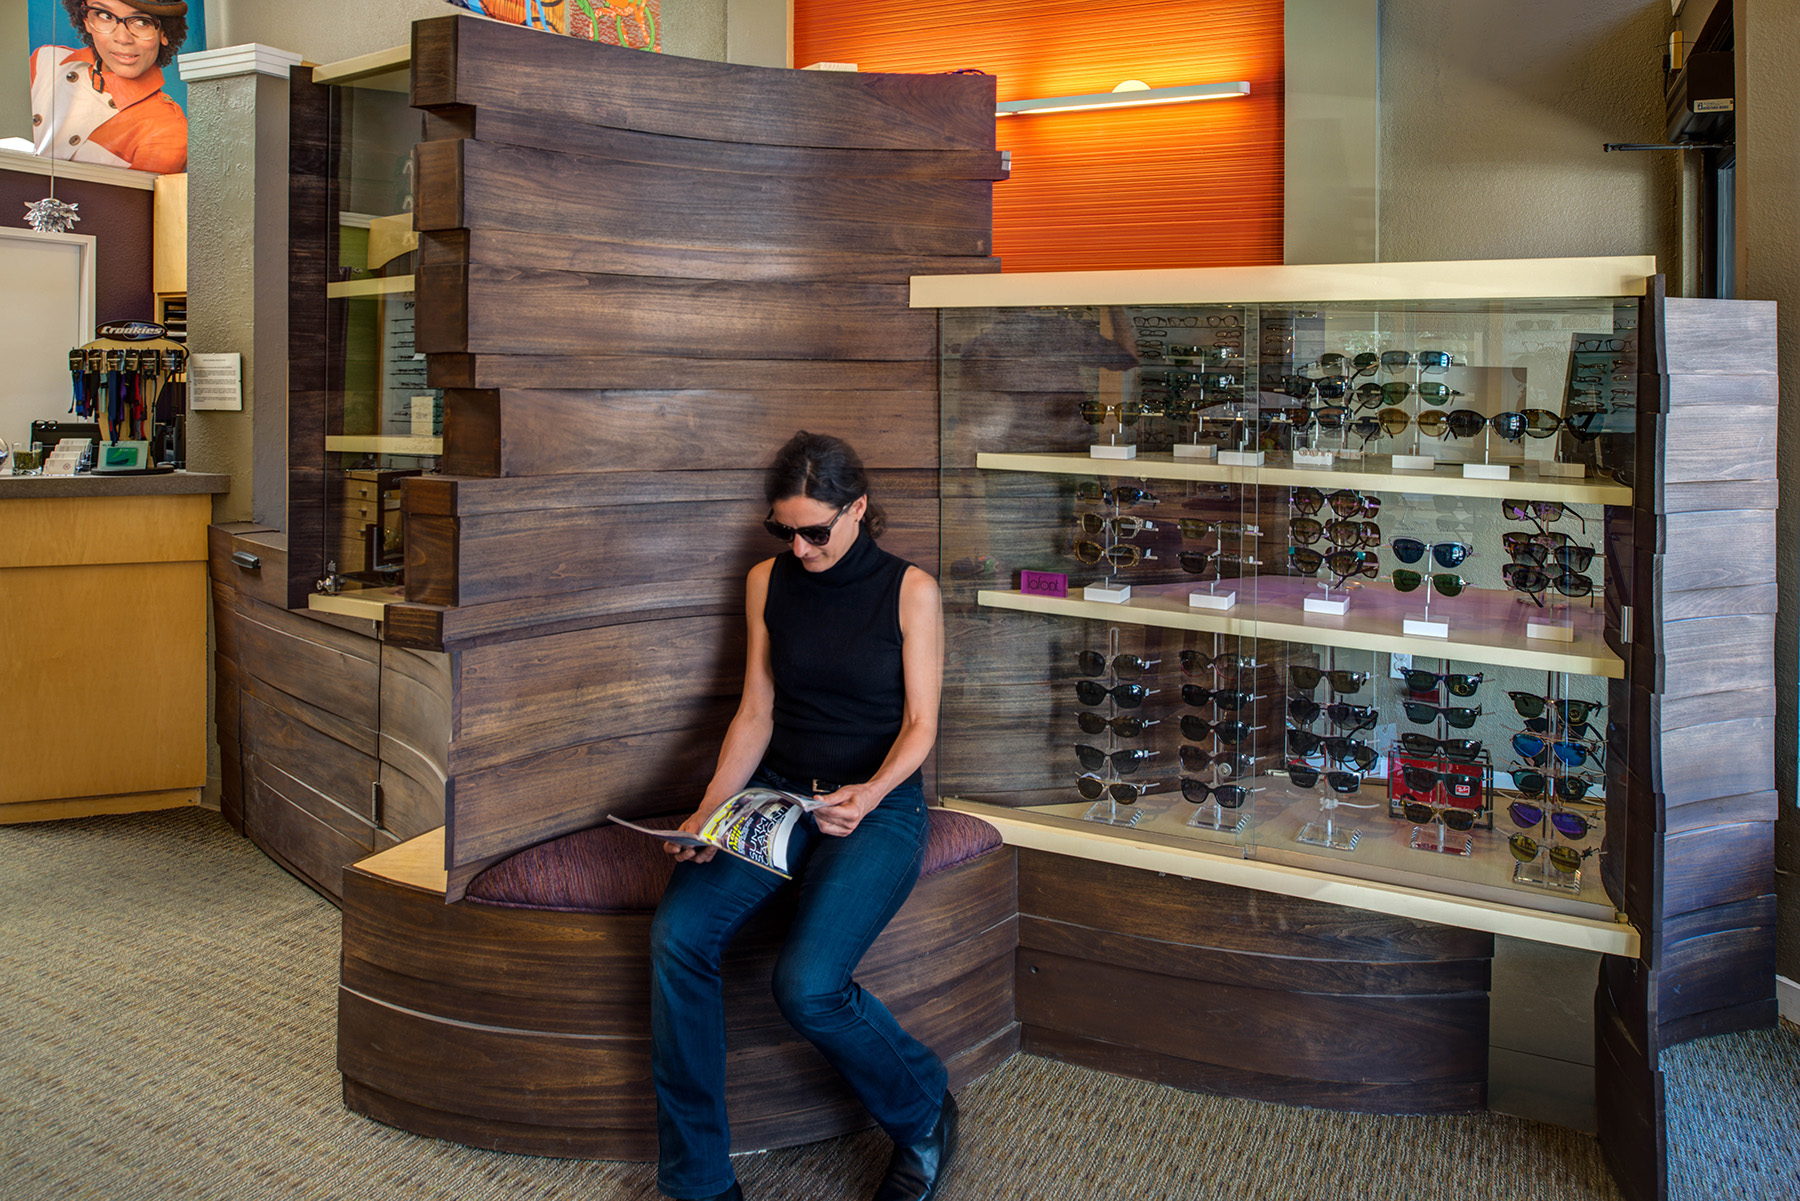 Design and fabrication of bentwood display case/ seating for optometry practice and store in Oakland.